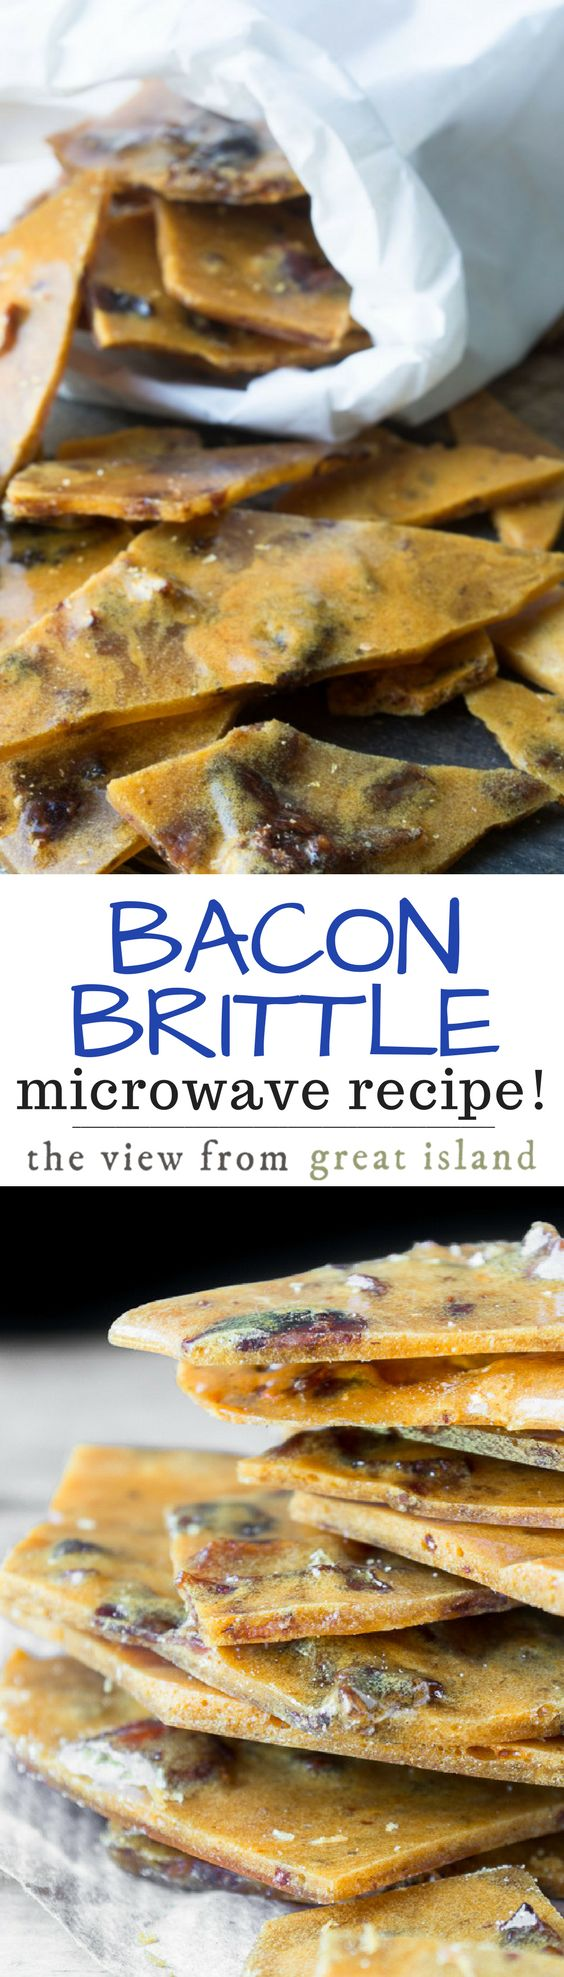 Bacon Brittle ~ the super inventive treat that has everybody talking, and it's made right in the microwave!